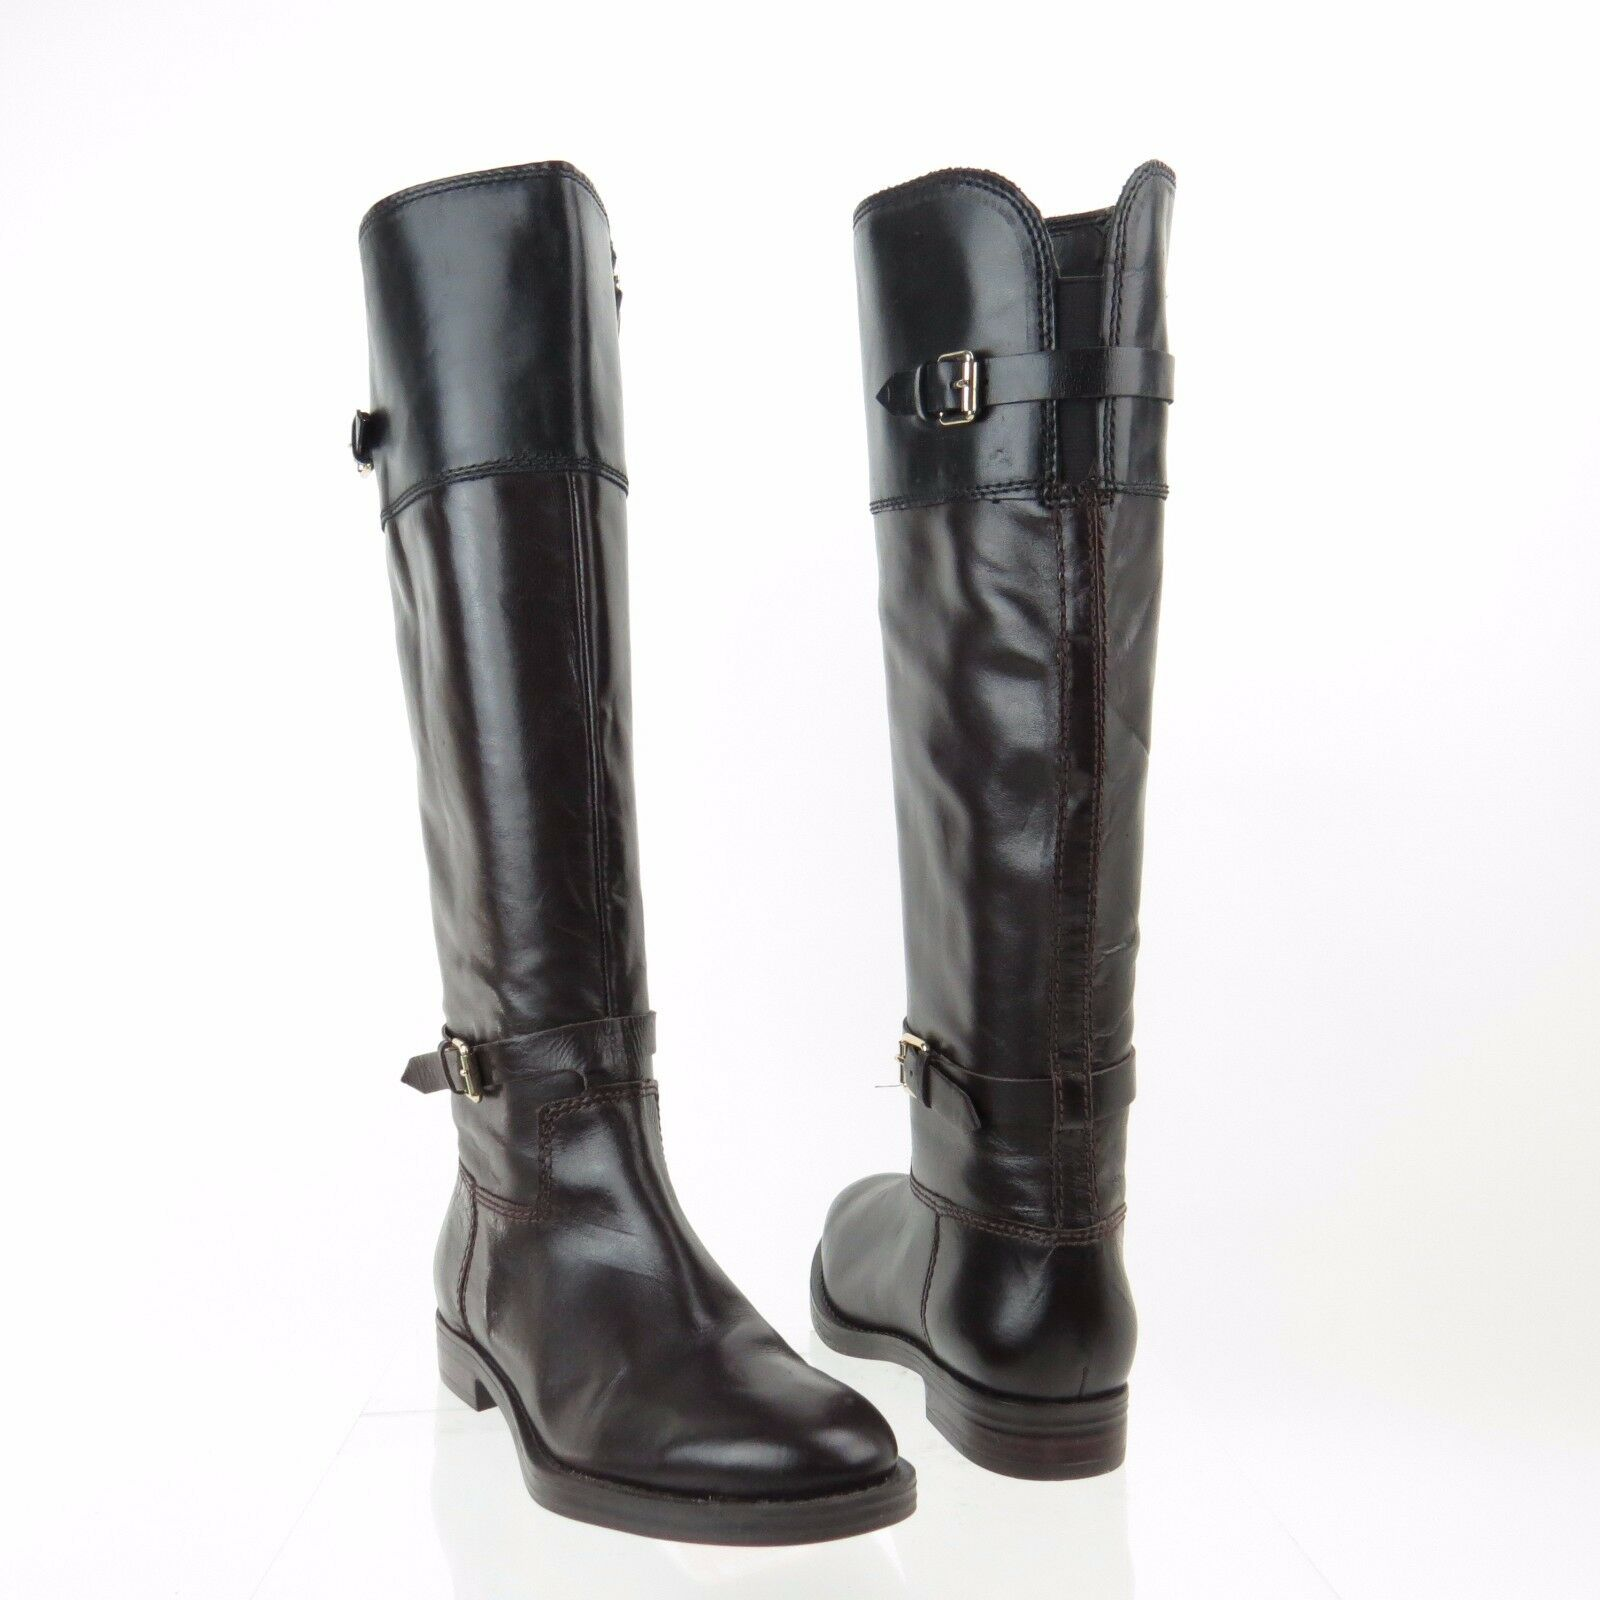 Women's Enzo Angiolini EERO Shoes Dark Brown Leather Riding Boots Sz 6 M NEW